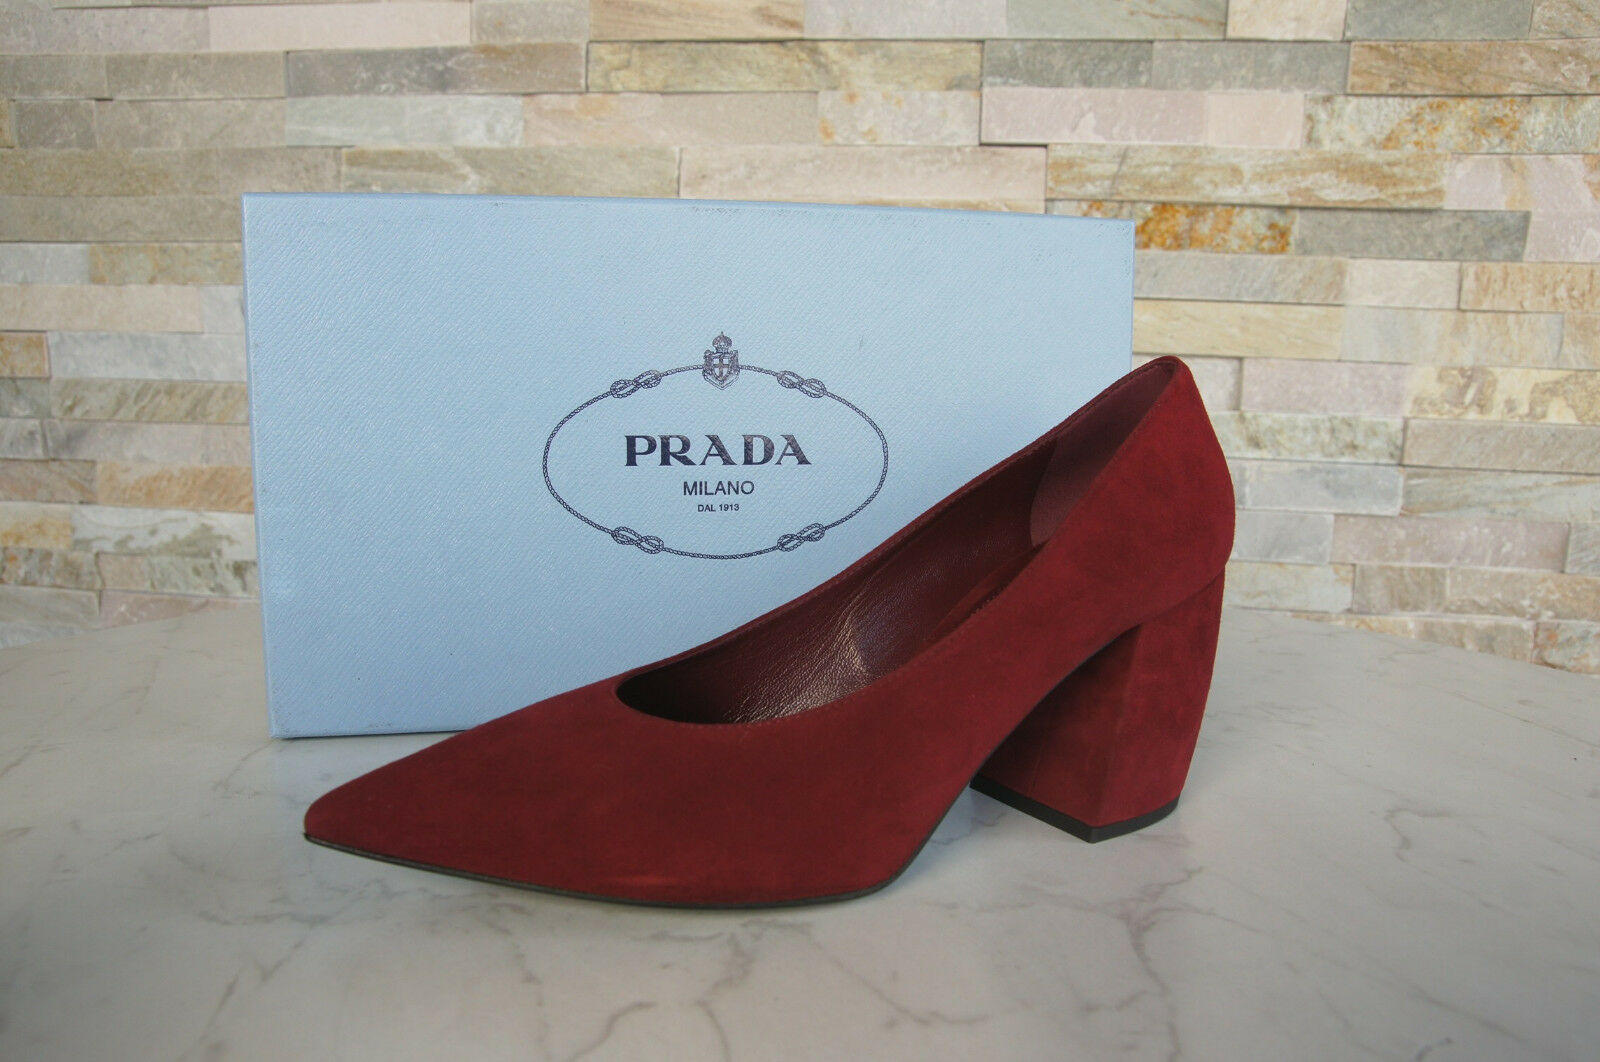 Luxury Prada Size 38,5 Pumps shoes High Heels 1I762H Red Purple New Previously